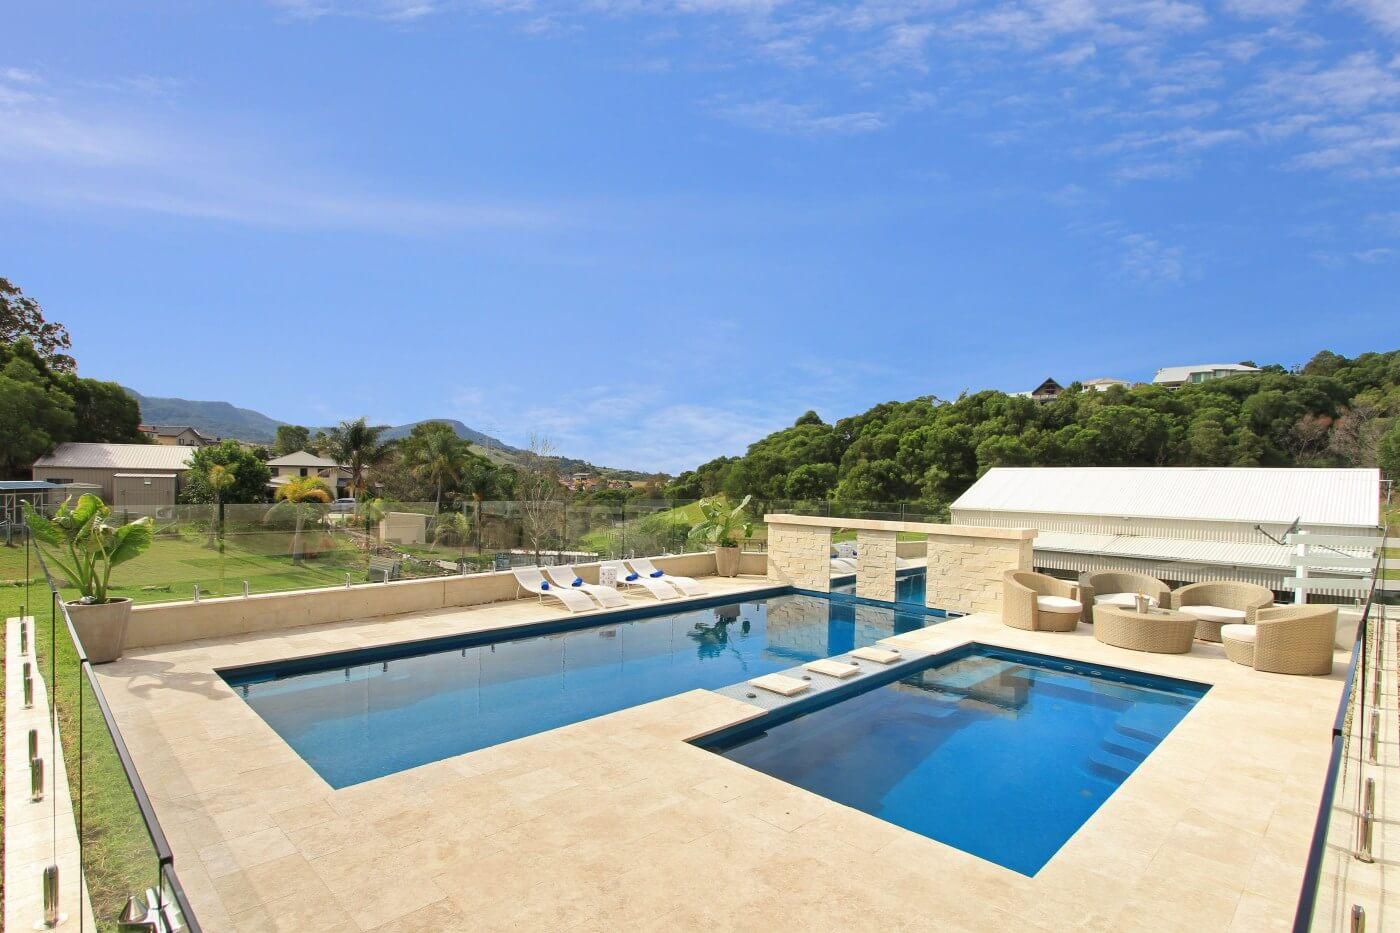 The Best Pool Design Ideas For Your Backyard Compass Pools Australia with regard to 12 Awesome Concepts of How to Improve Backyard With Pool Design Ideas